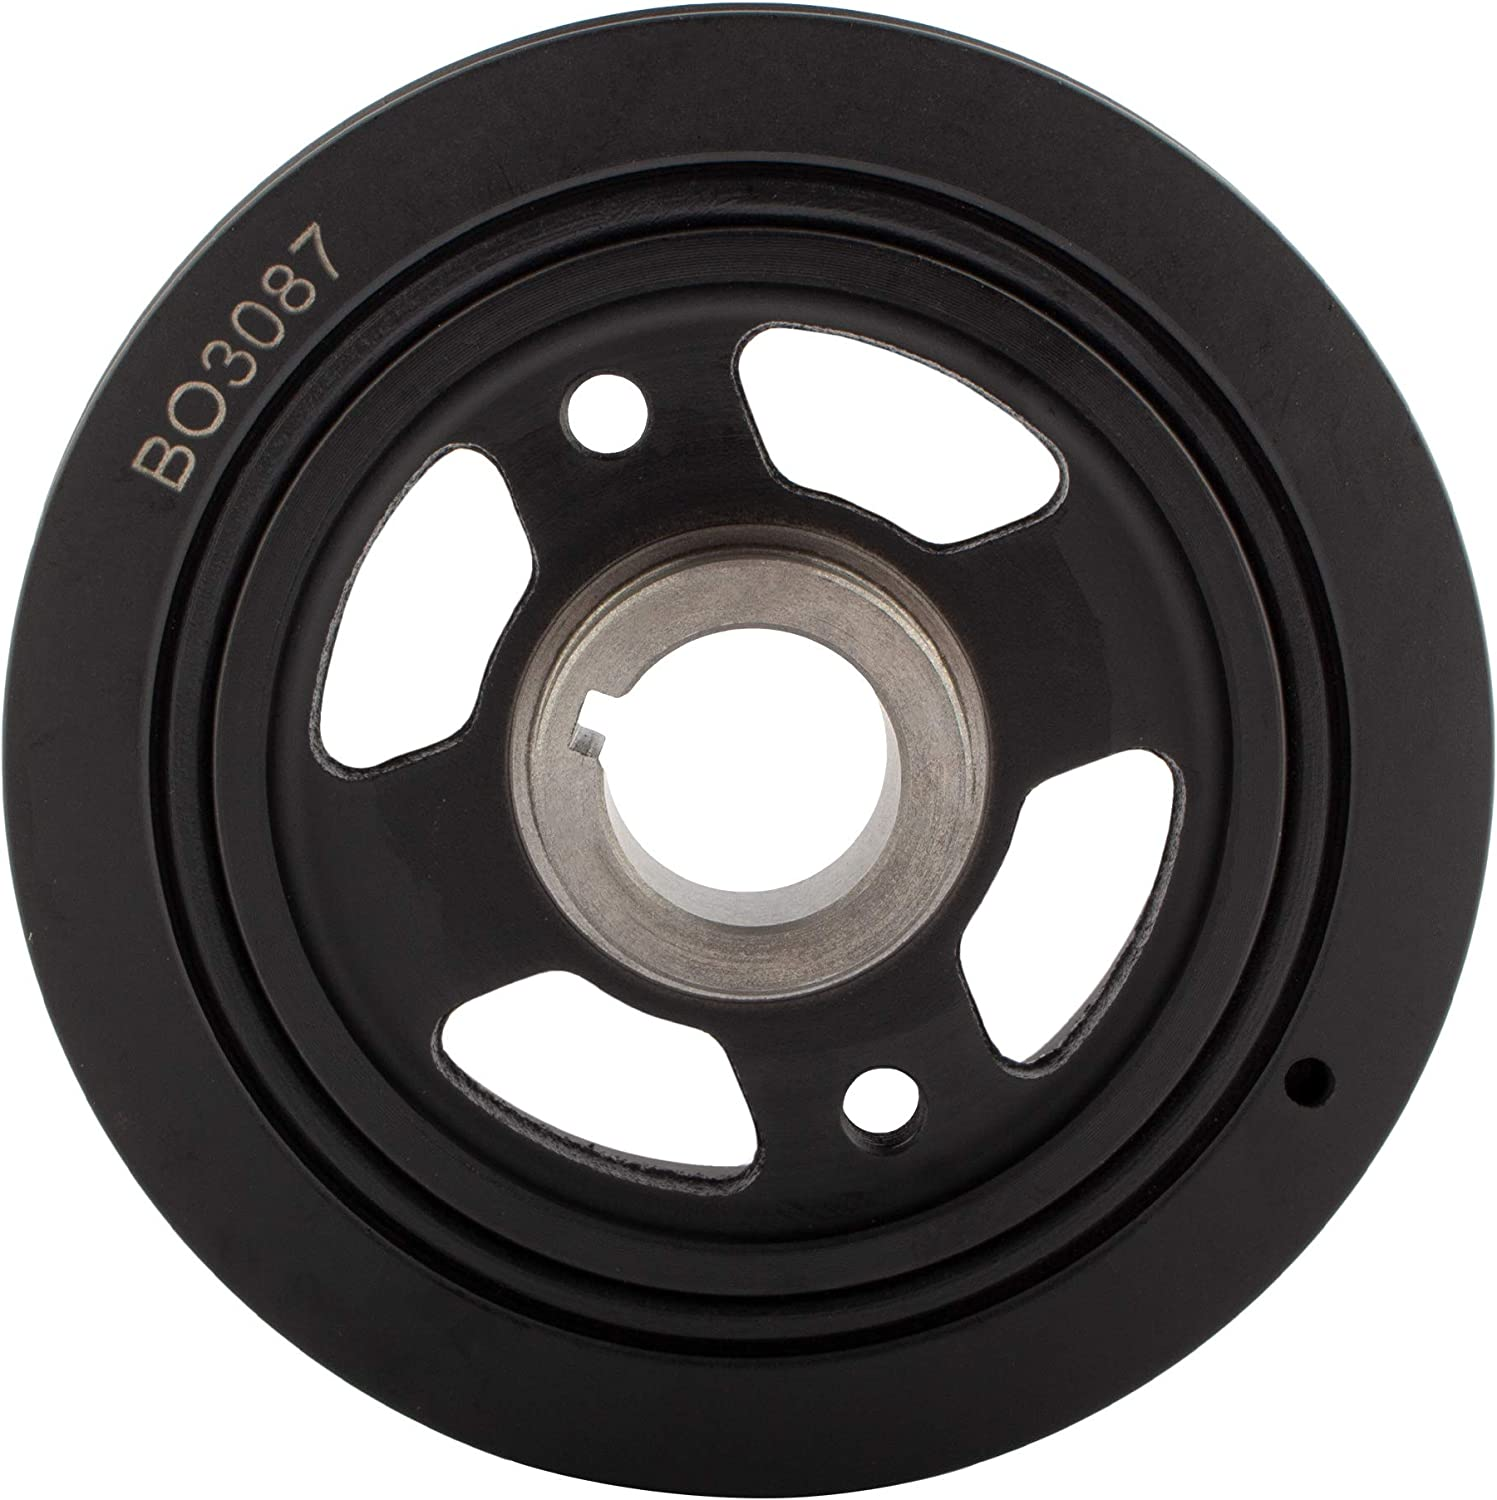 Corolla 1988-1997 Replace# 13470-16090 BOXI Harmonic Balancer Crankshaft Pulley Compatible with Toyot-a Celica 1990-1997